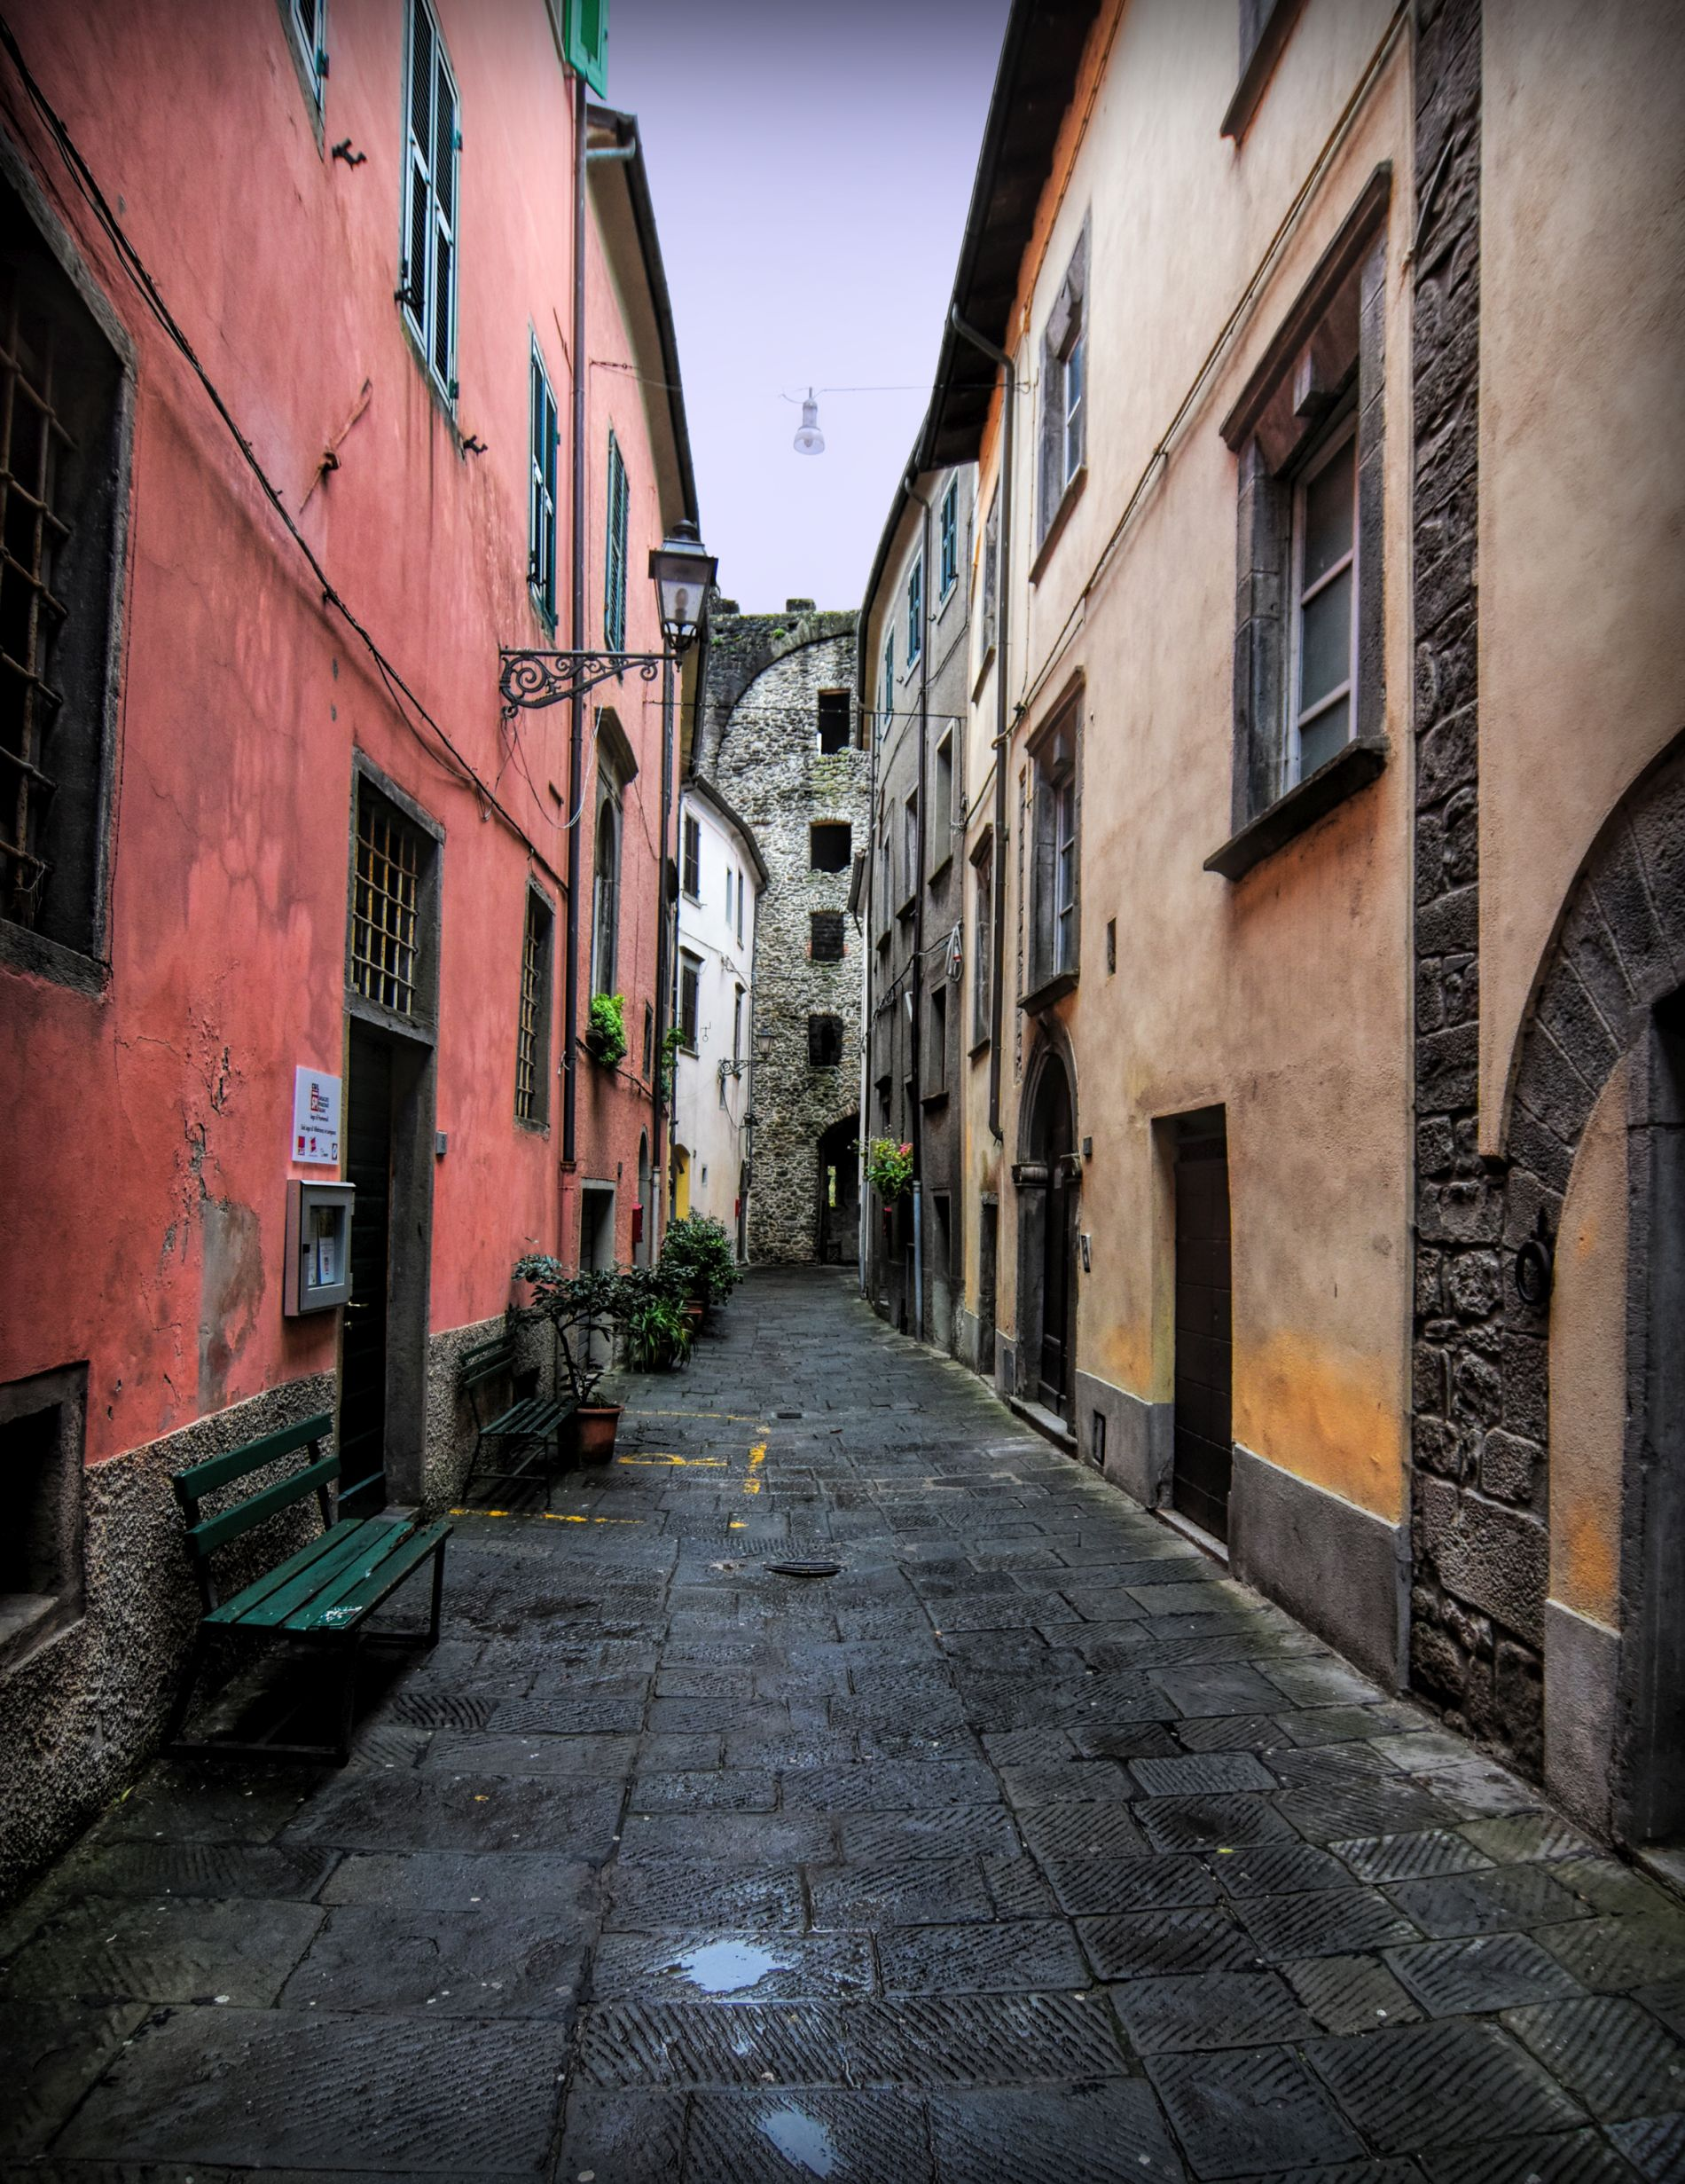 The narrow streets of Pontremoli